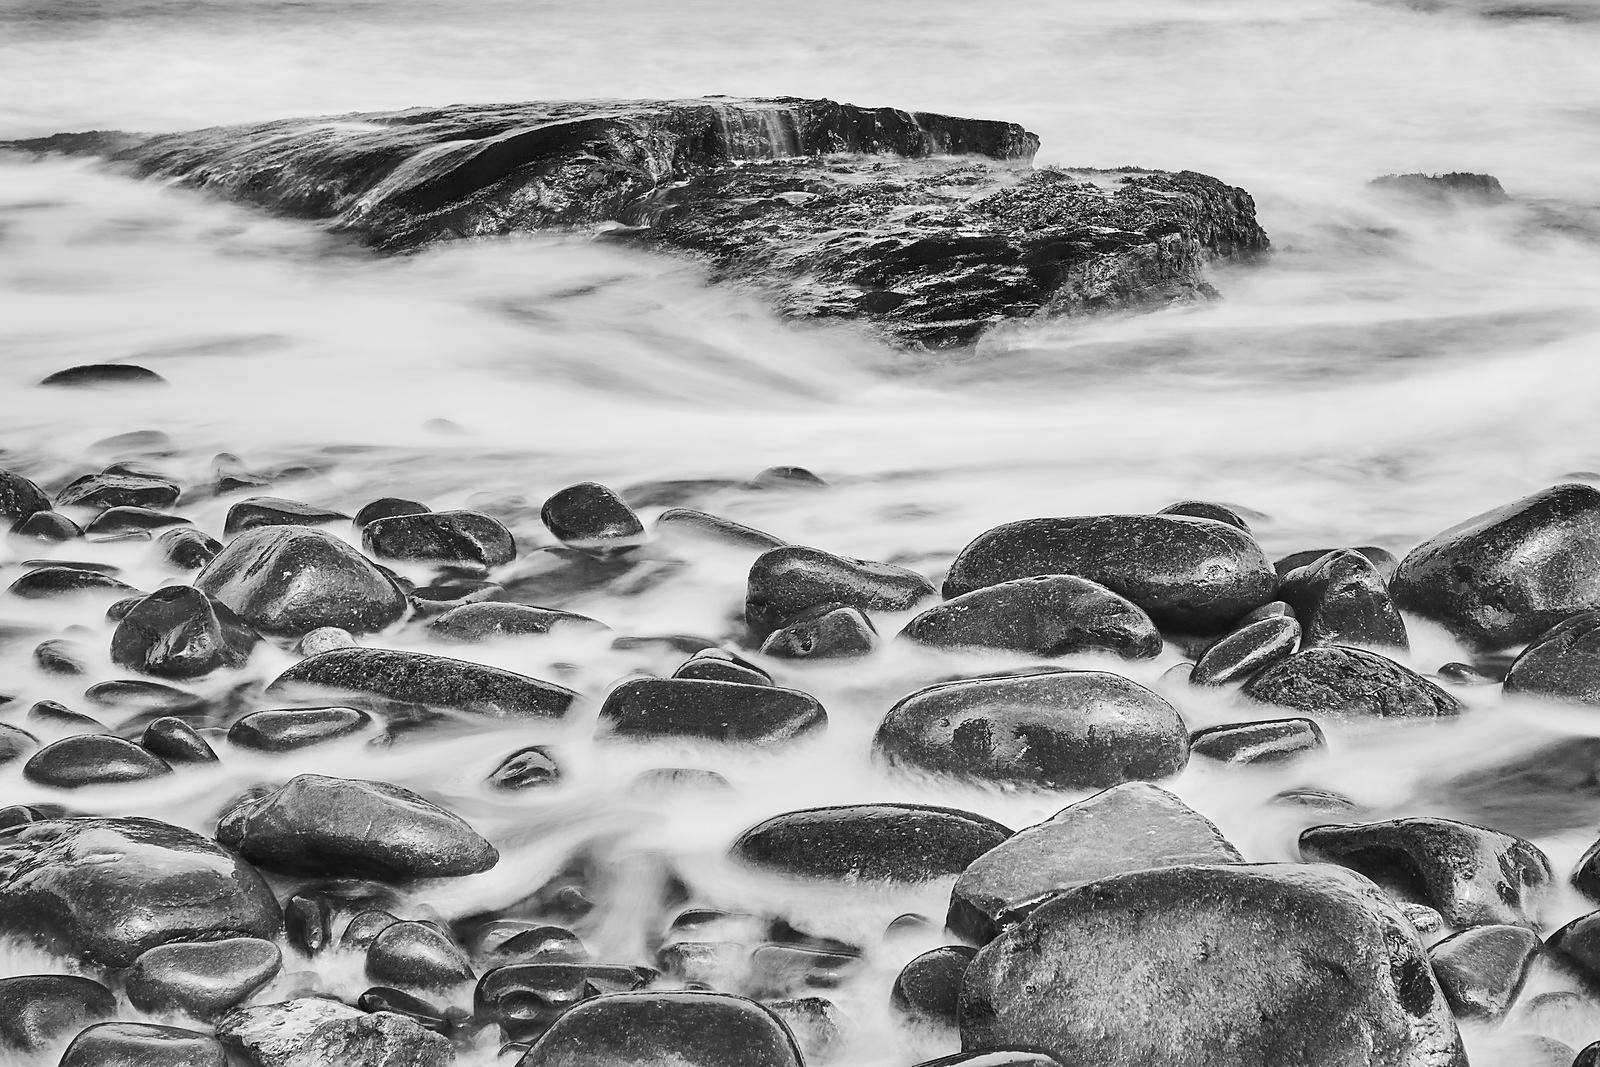 Rocks being washed by the waves in black and white